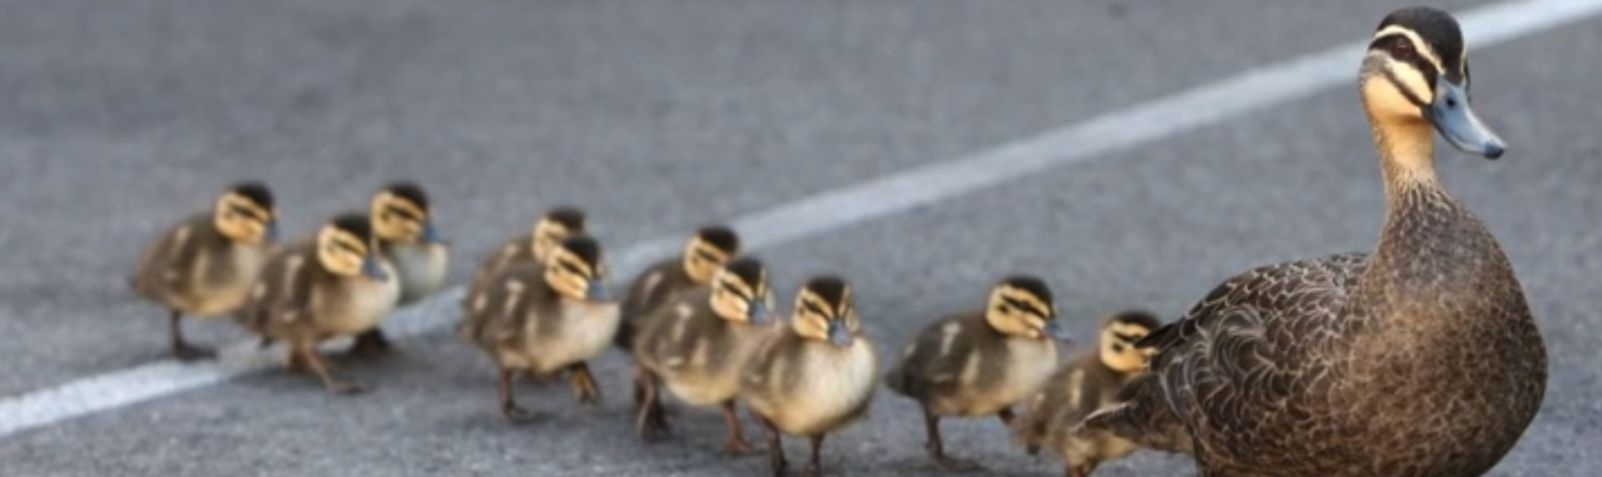 Disciple Making is Like a Family of Ducks